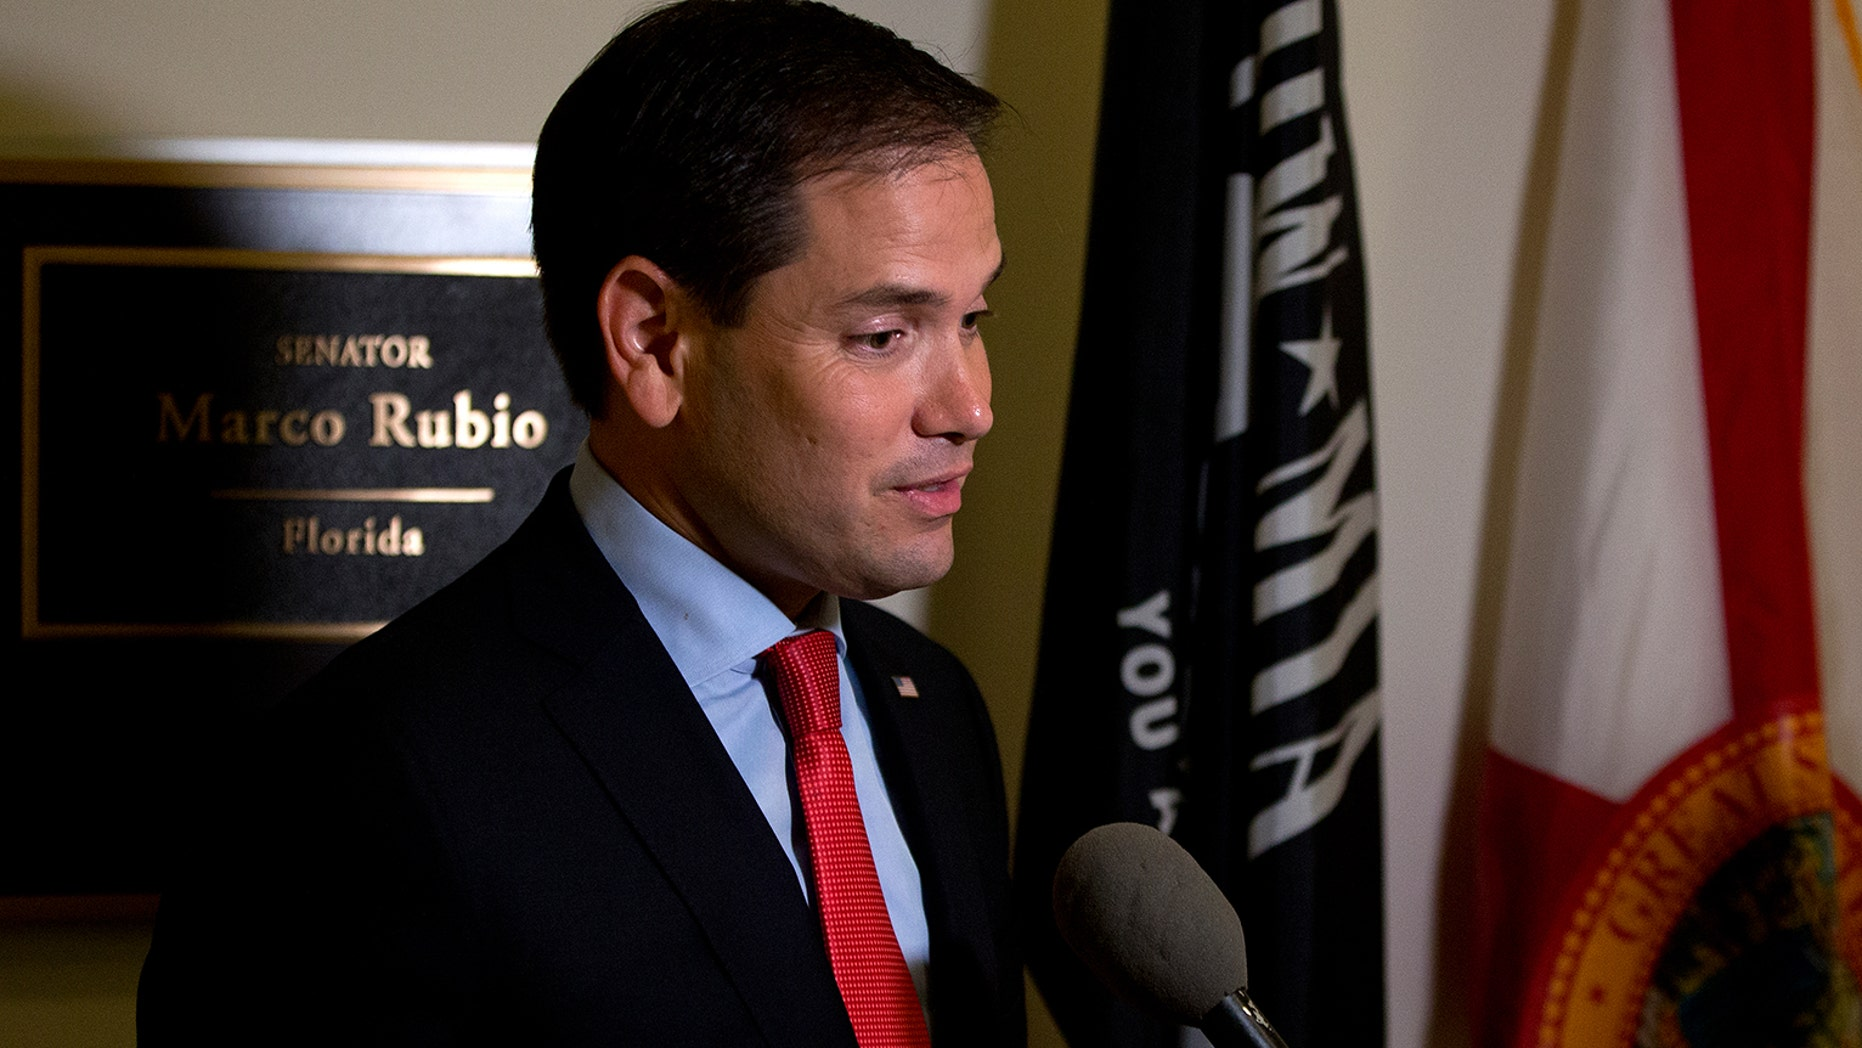 Sen. Marco Rubio outside his office on Capitol Hill in Washington, Wednesday, June 22, 2016.